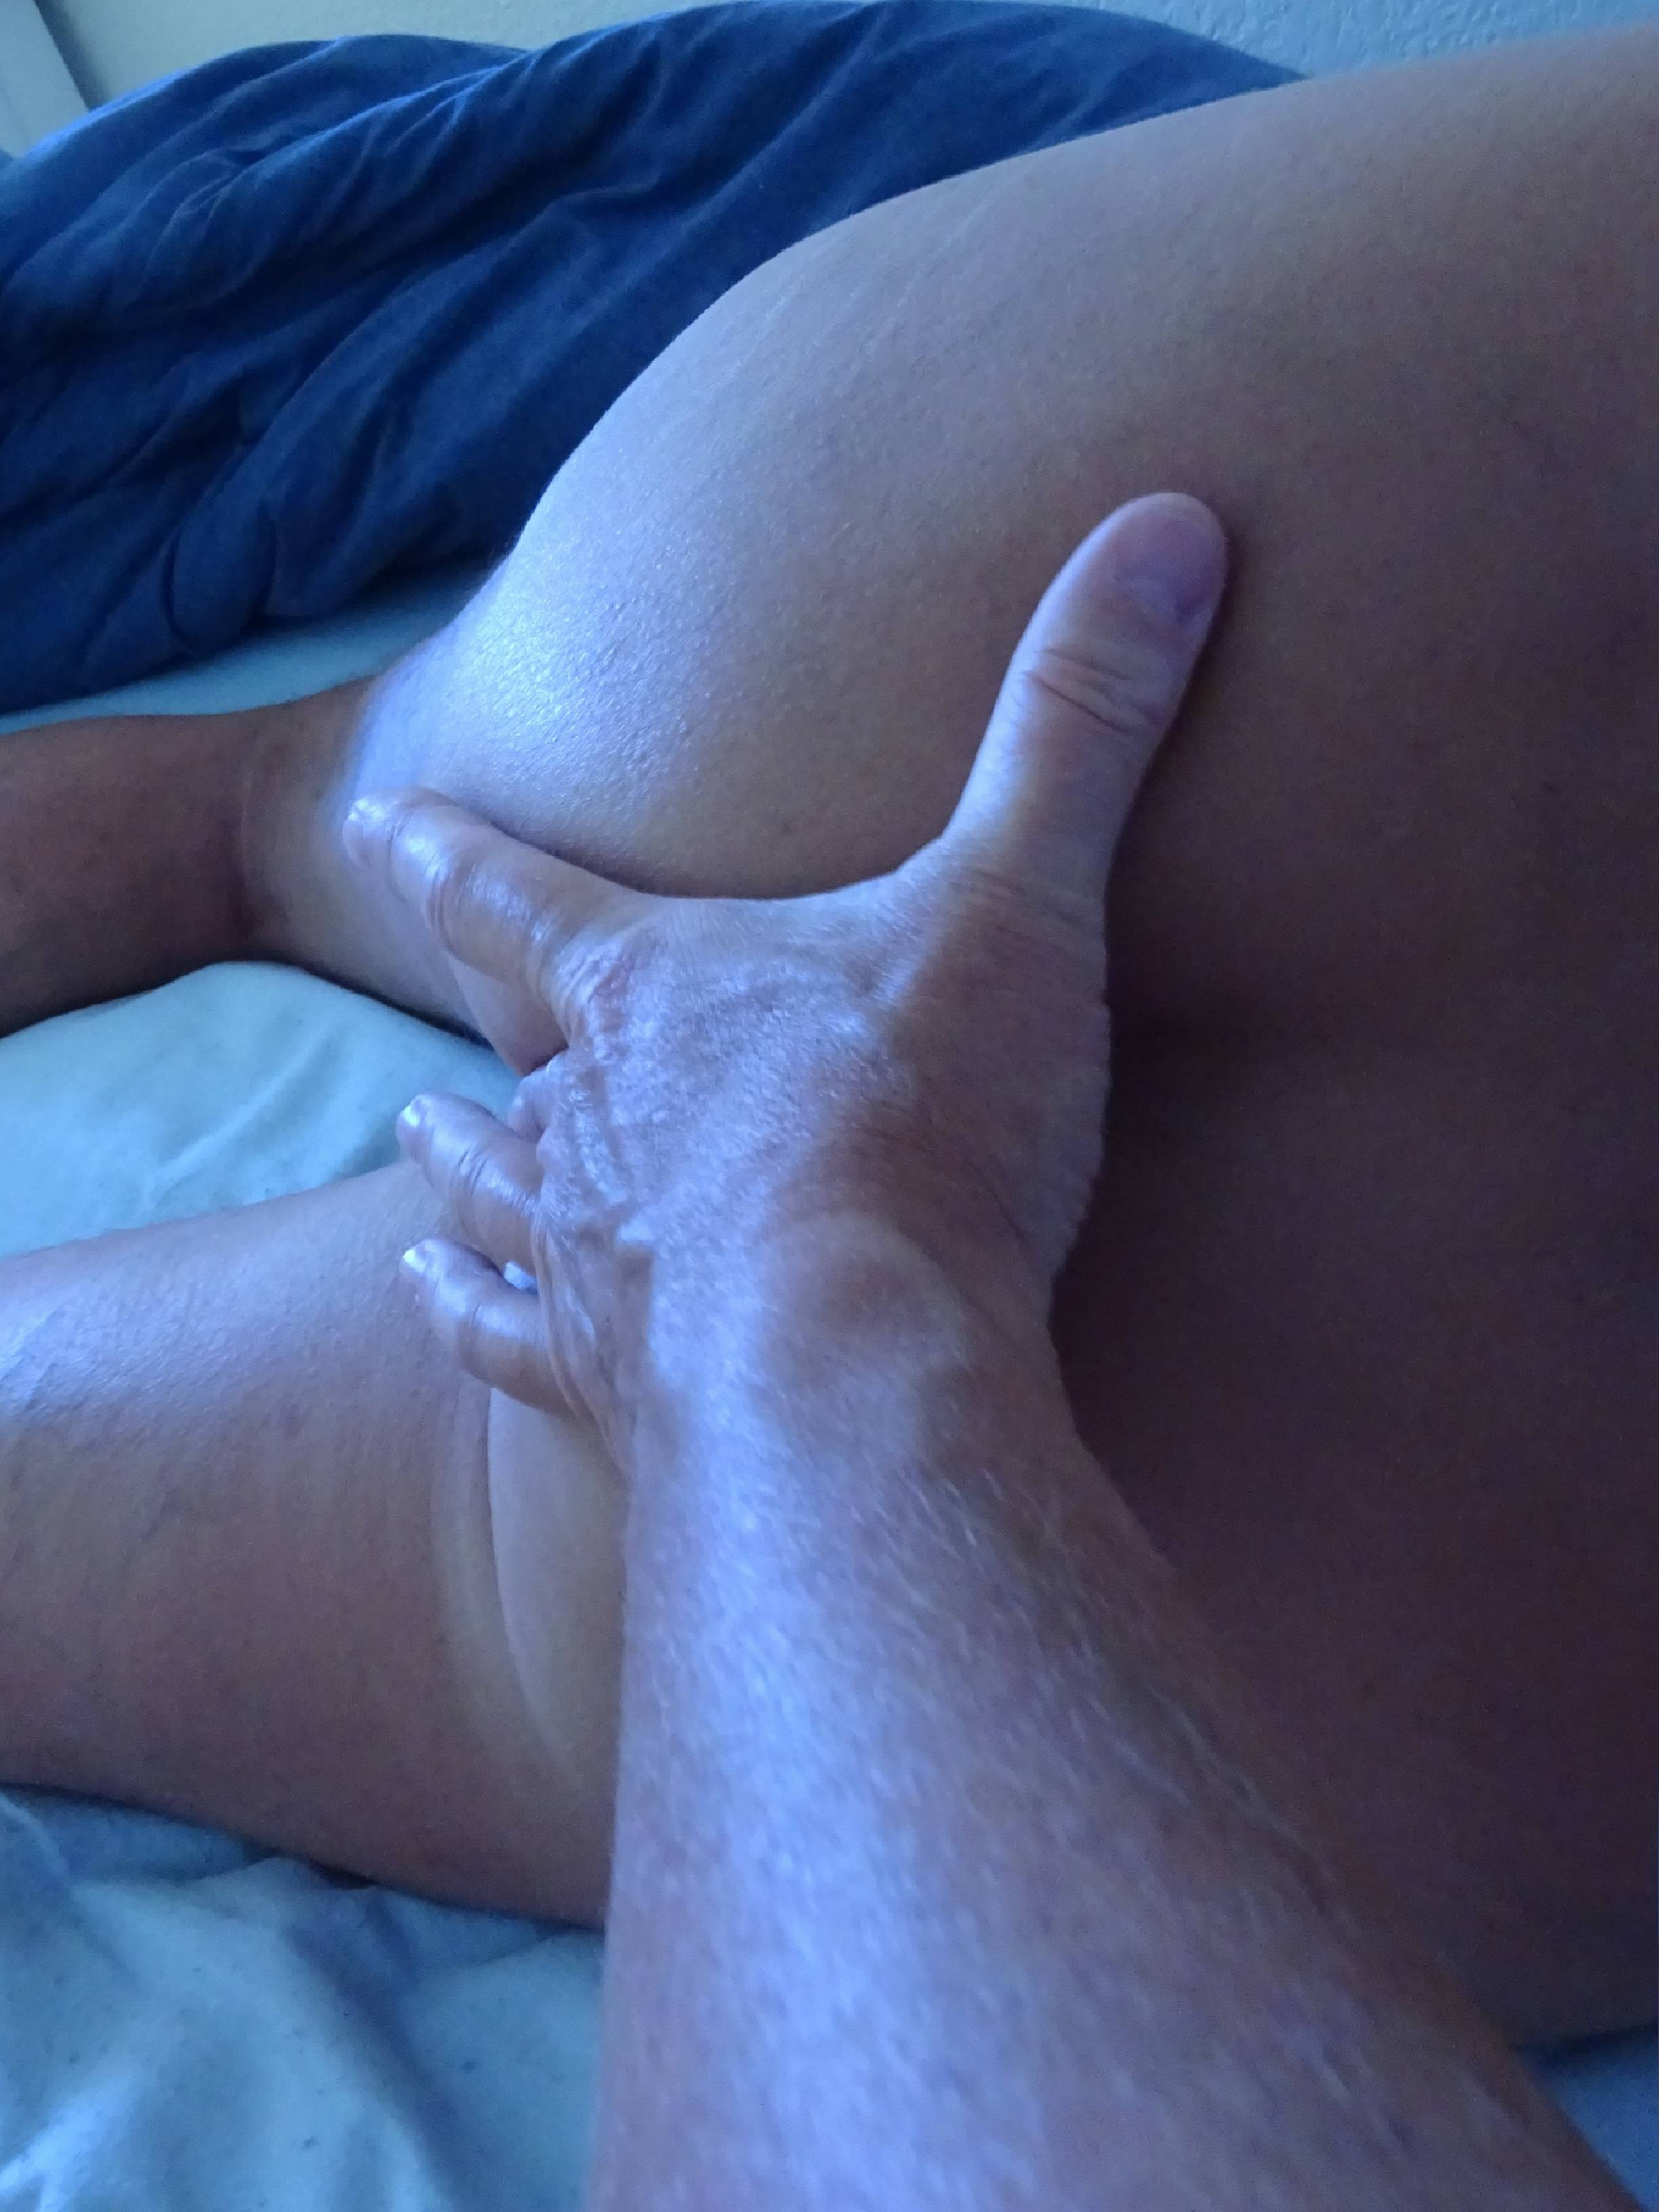 Photo in topic Gay Anal Sex by Crapoudoo